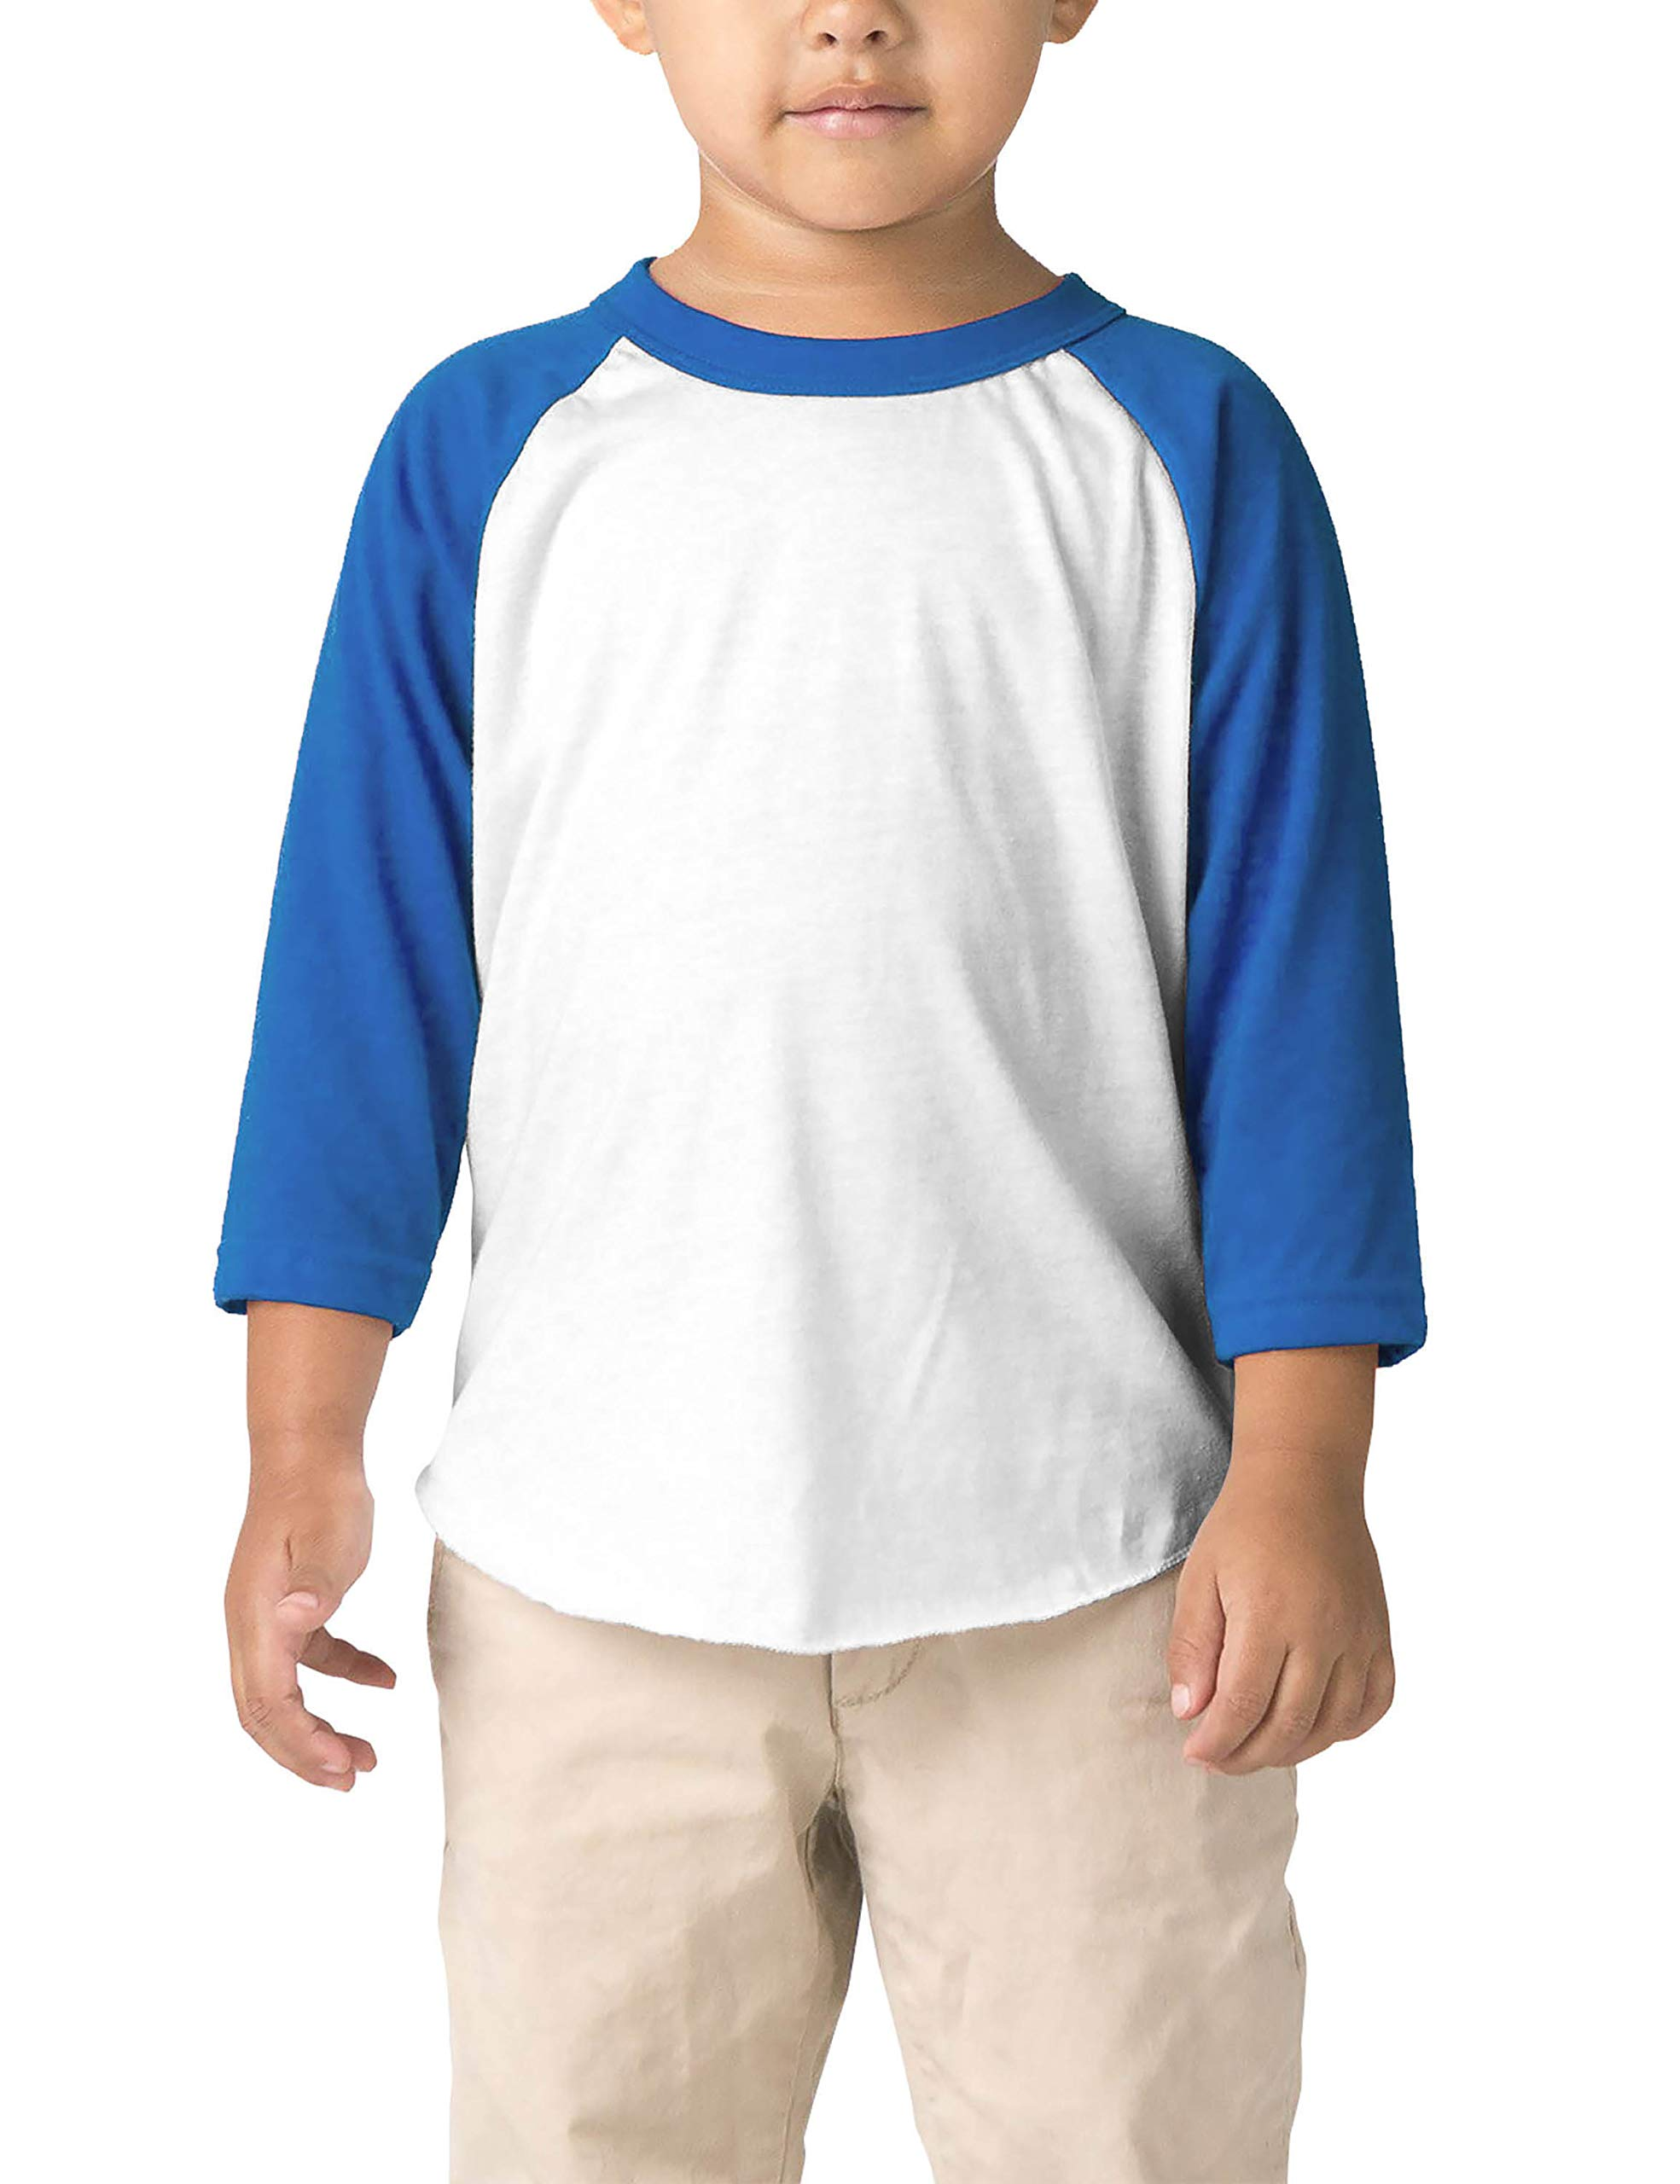 Hat and Beyond Kids Raglan 3/4 Sleeves Baseball Tee (12M, (Baby) 5bh03_White/Royal Blue) by Hat and Beyond